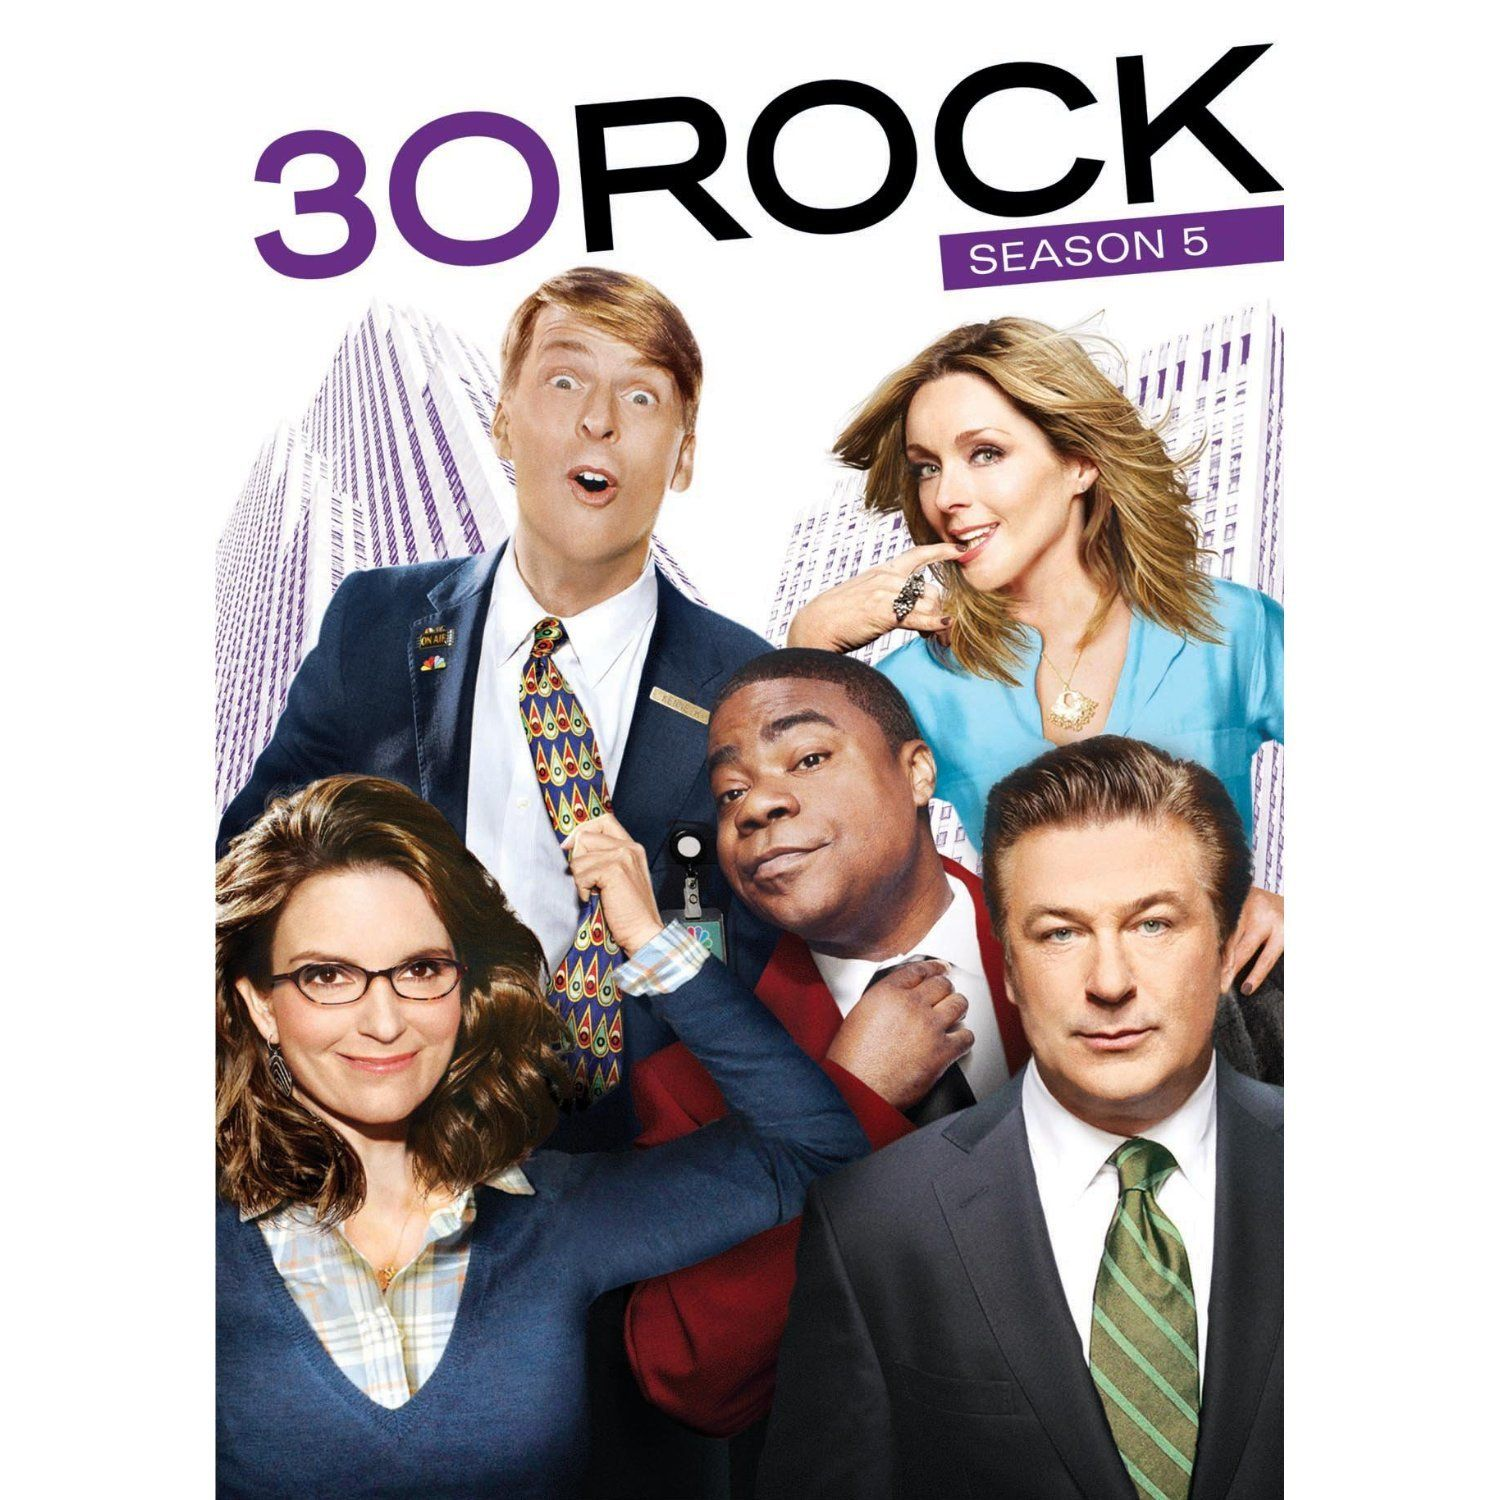 30 Rock  Sharp, hilarious, and witty  Tina Fey is a genius